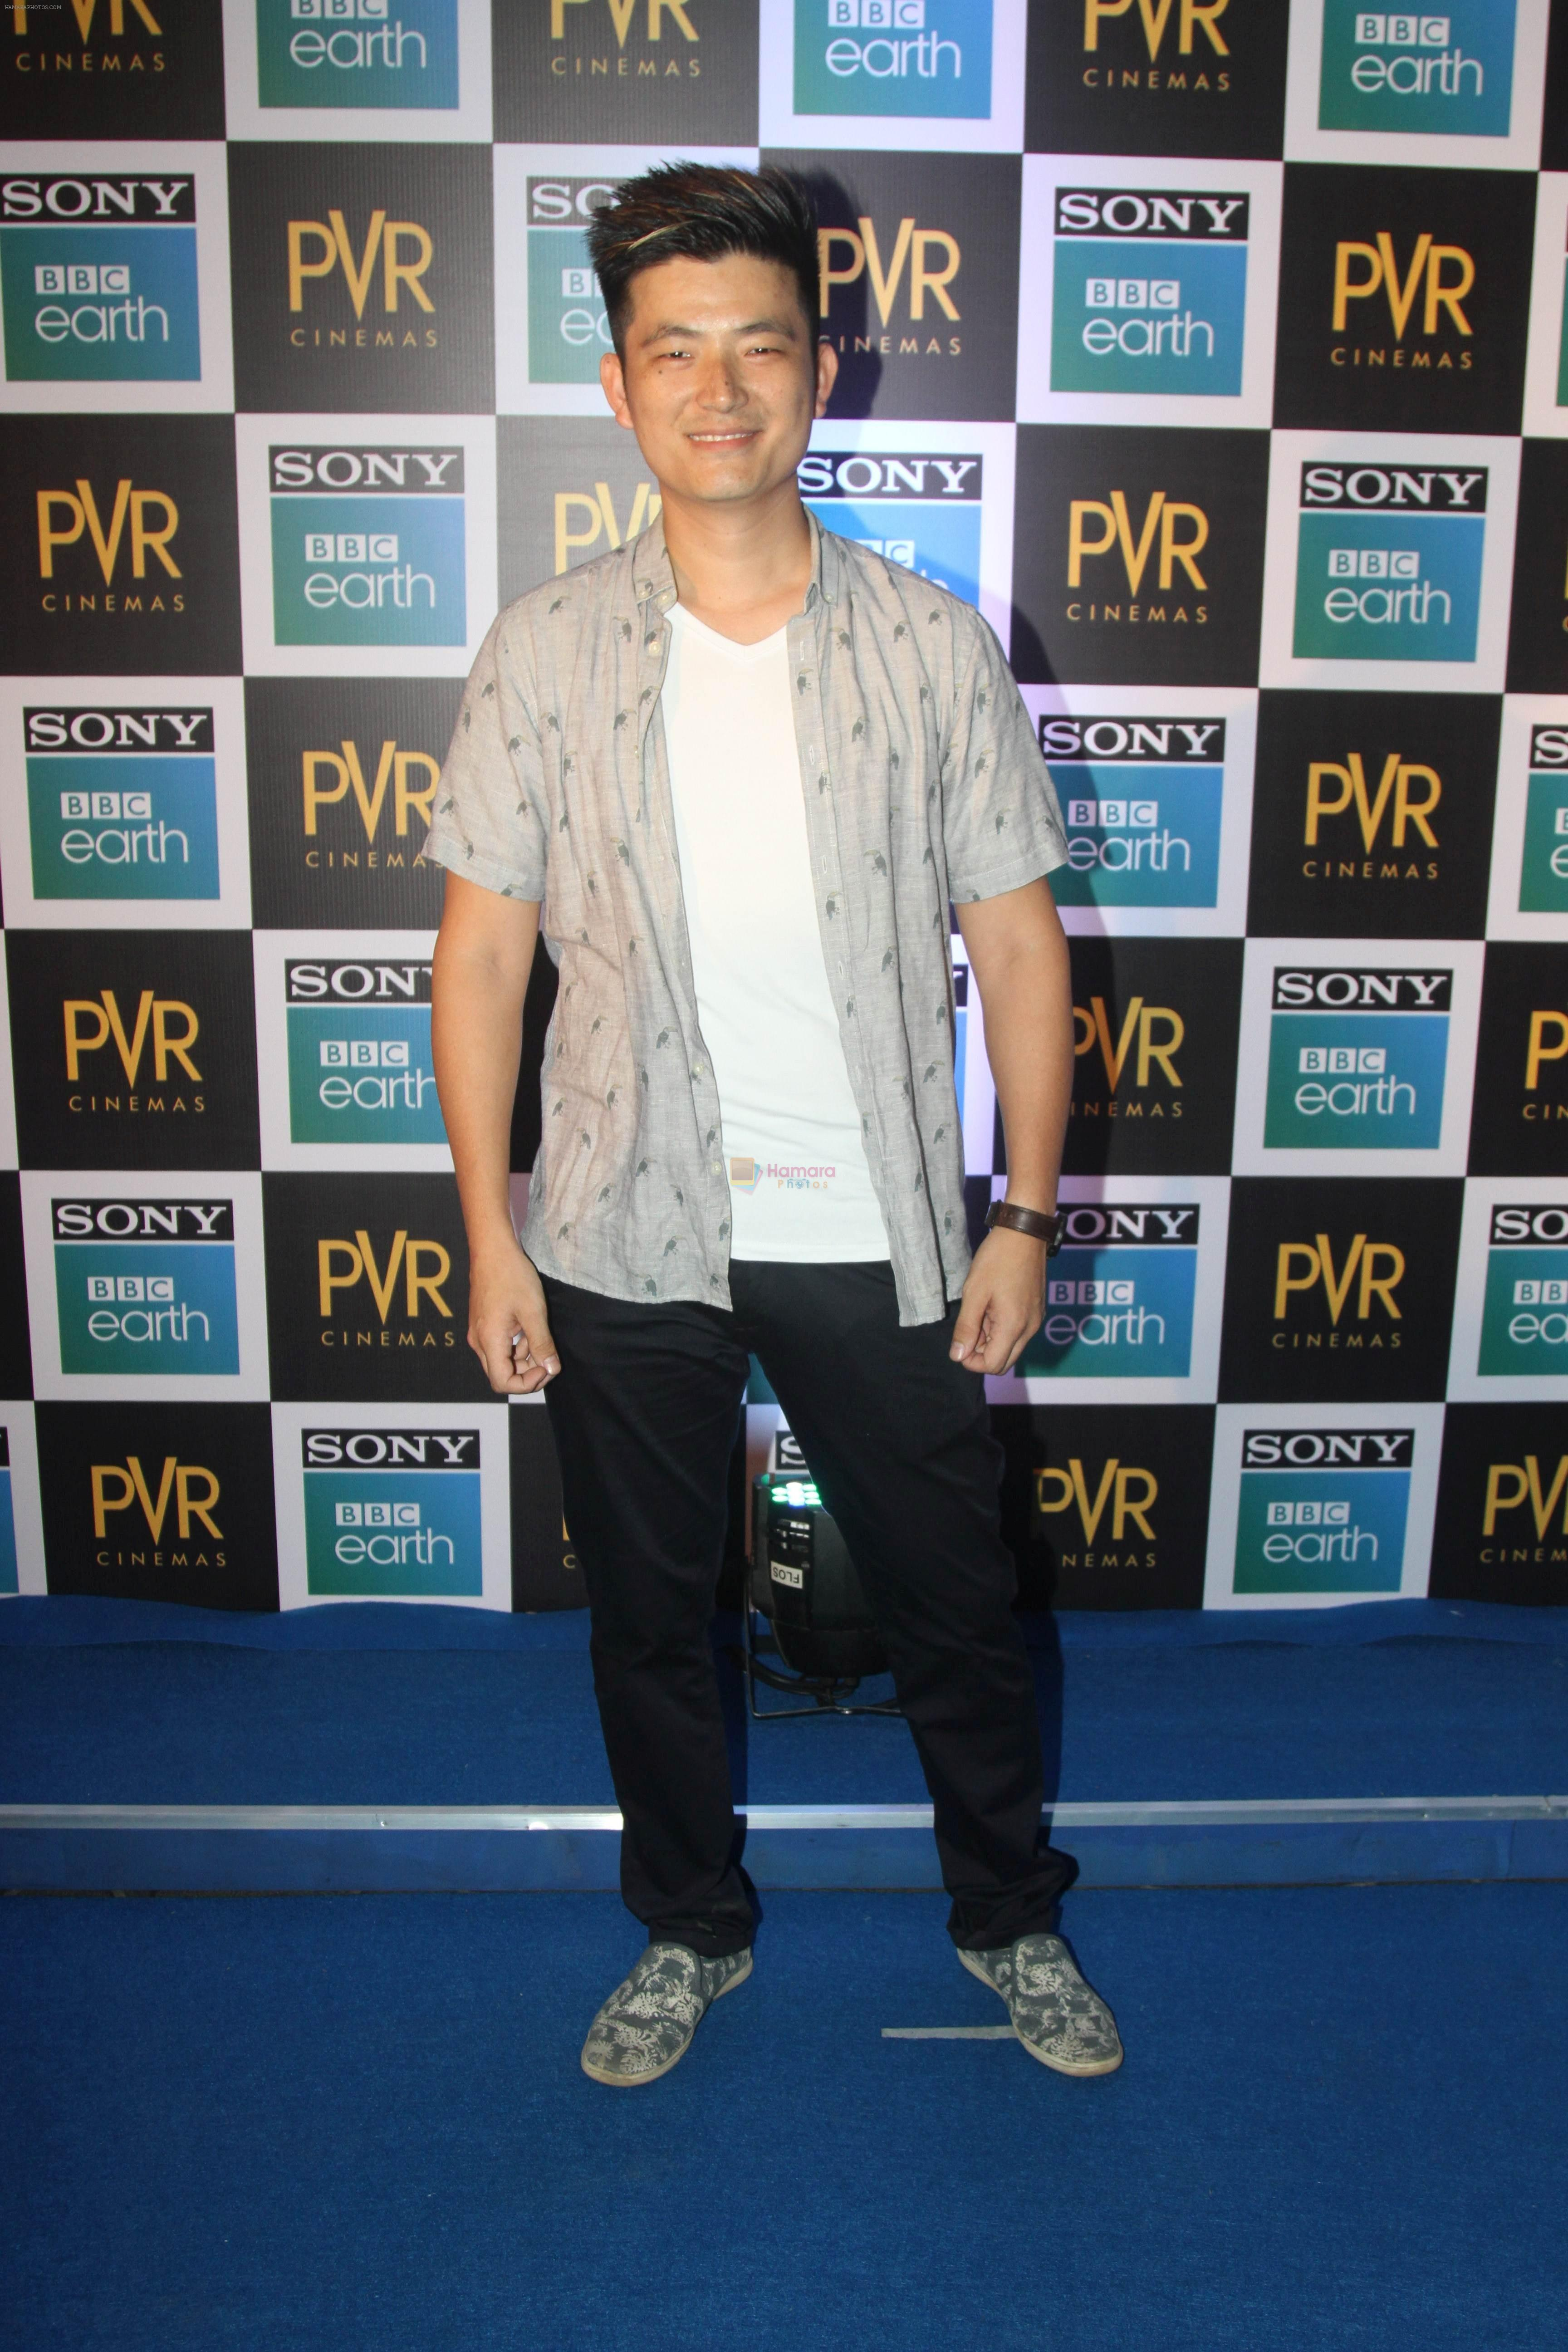 Meiyang Chang at the Screening of Sony BBC Earth's film Blue Planet 2 at pvr icon in andheri on 15th May 2018